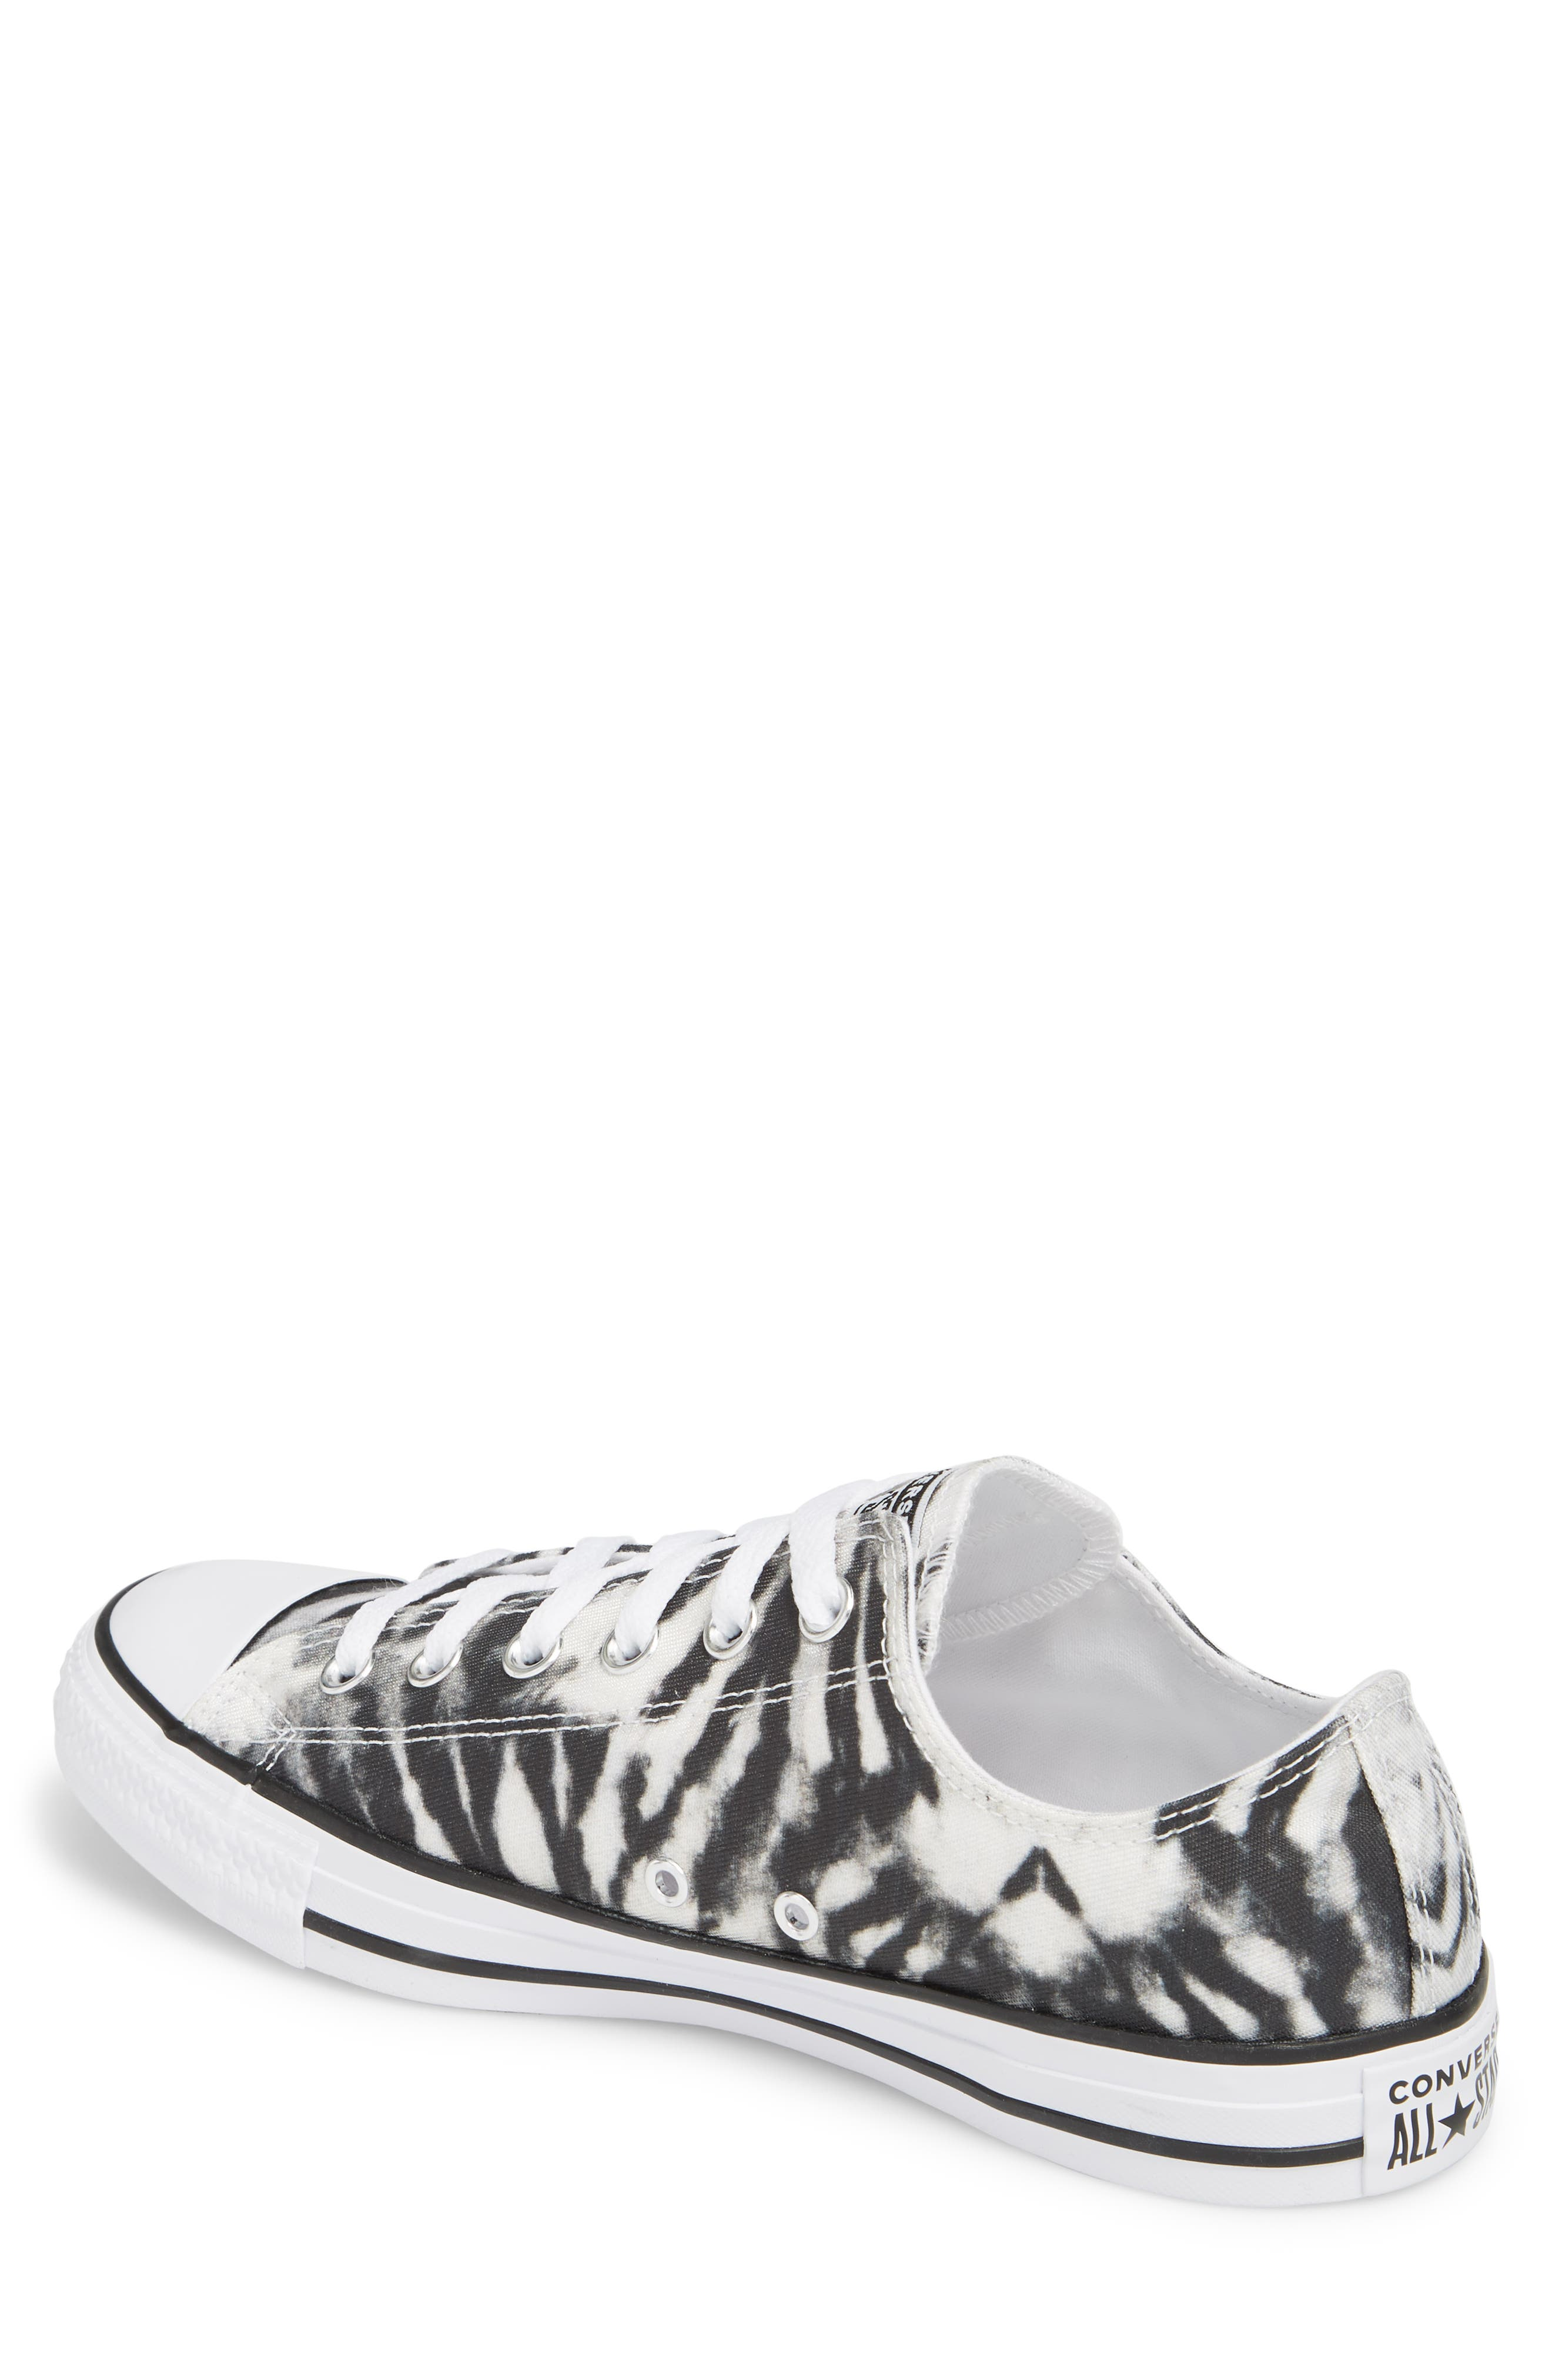 Chuck Taylor<sup>®</sup> All Star<sup>®</sup> Tie Dye Low Top Sneaker,                             Alternate thumbnail 2, color,                             001